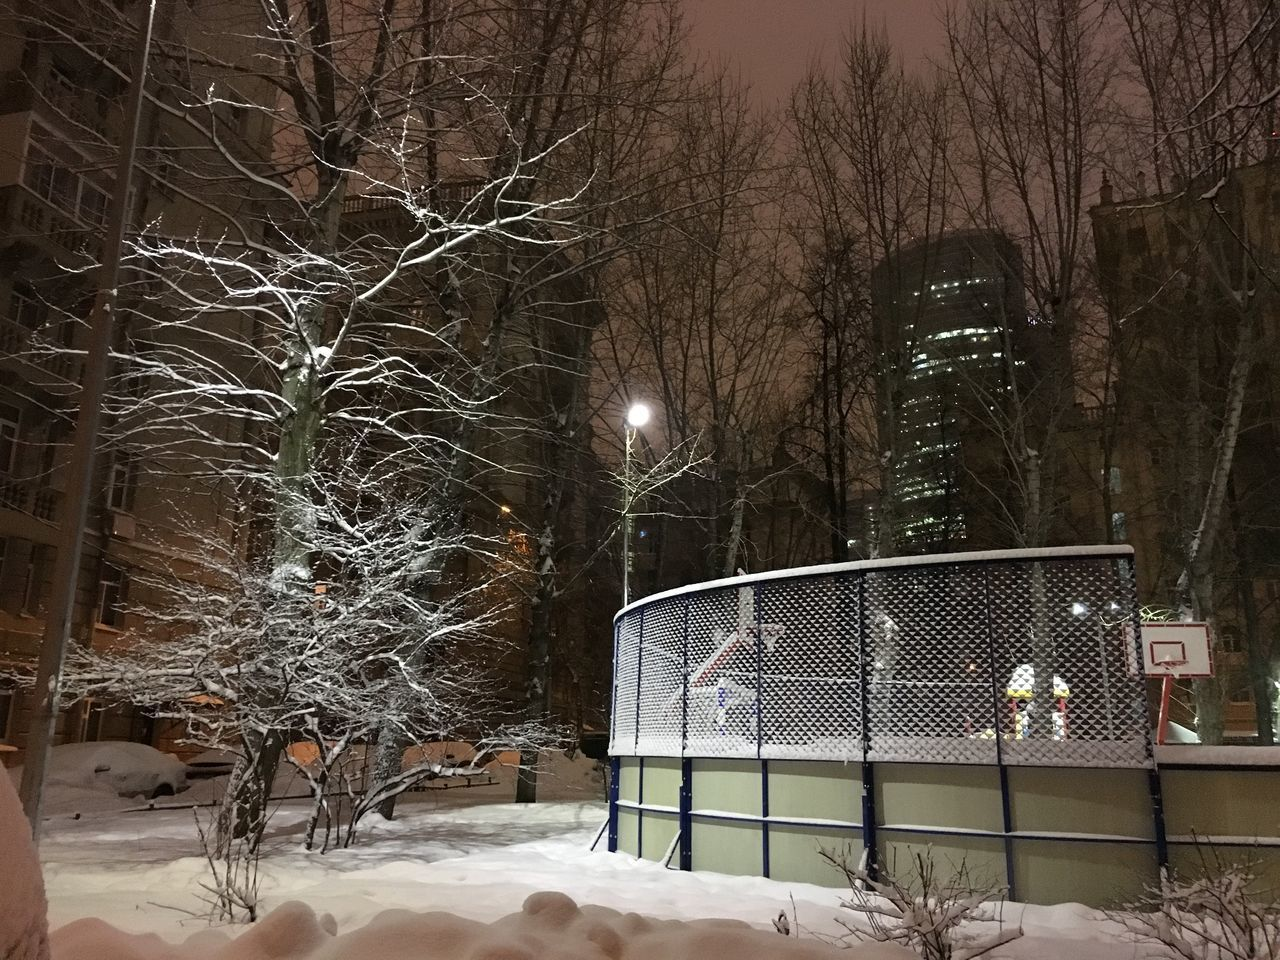 SNOW COVERED BARE TREES AGAINST ILLUMINATED BUILDING